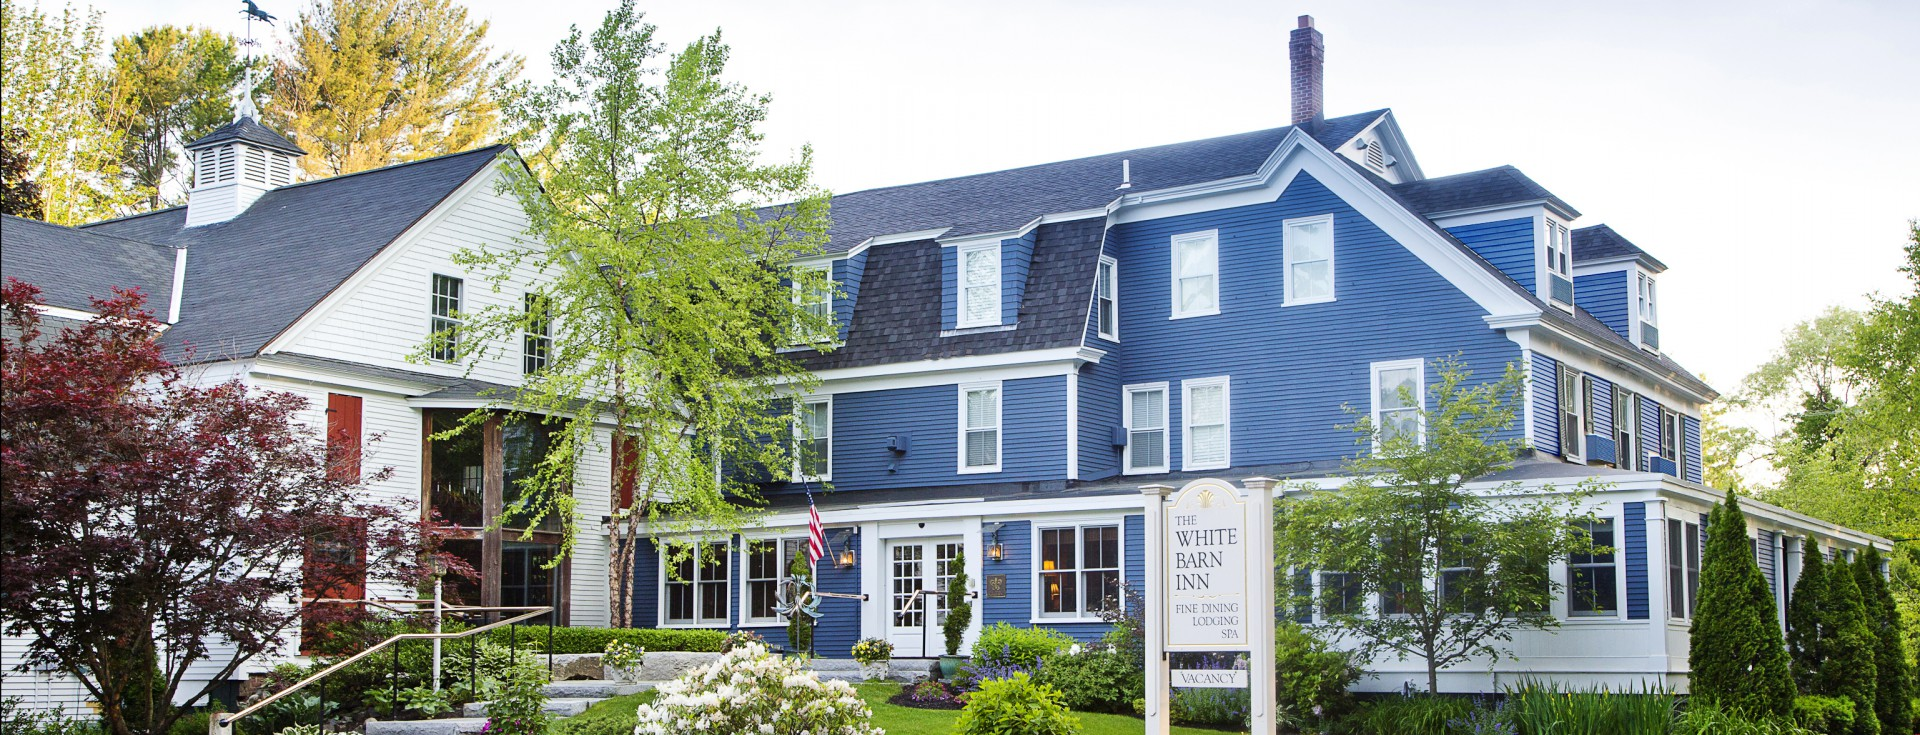 The White Barn Inn and Spa